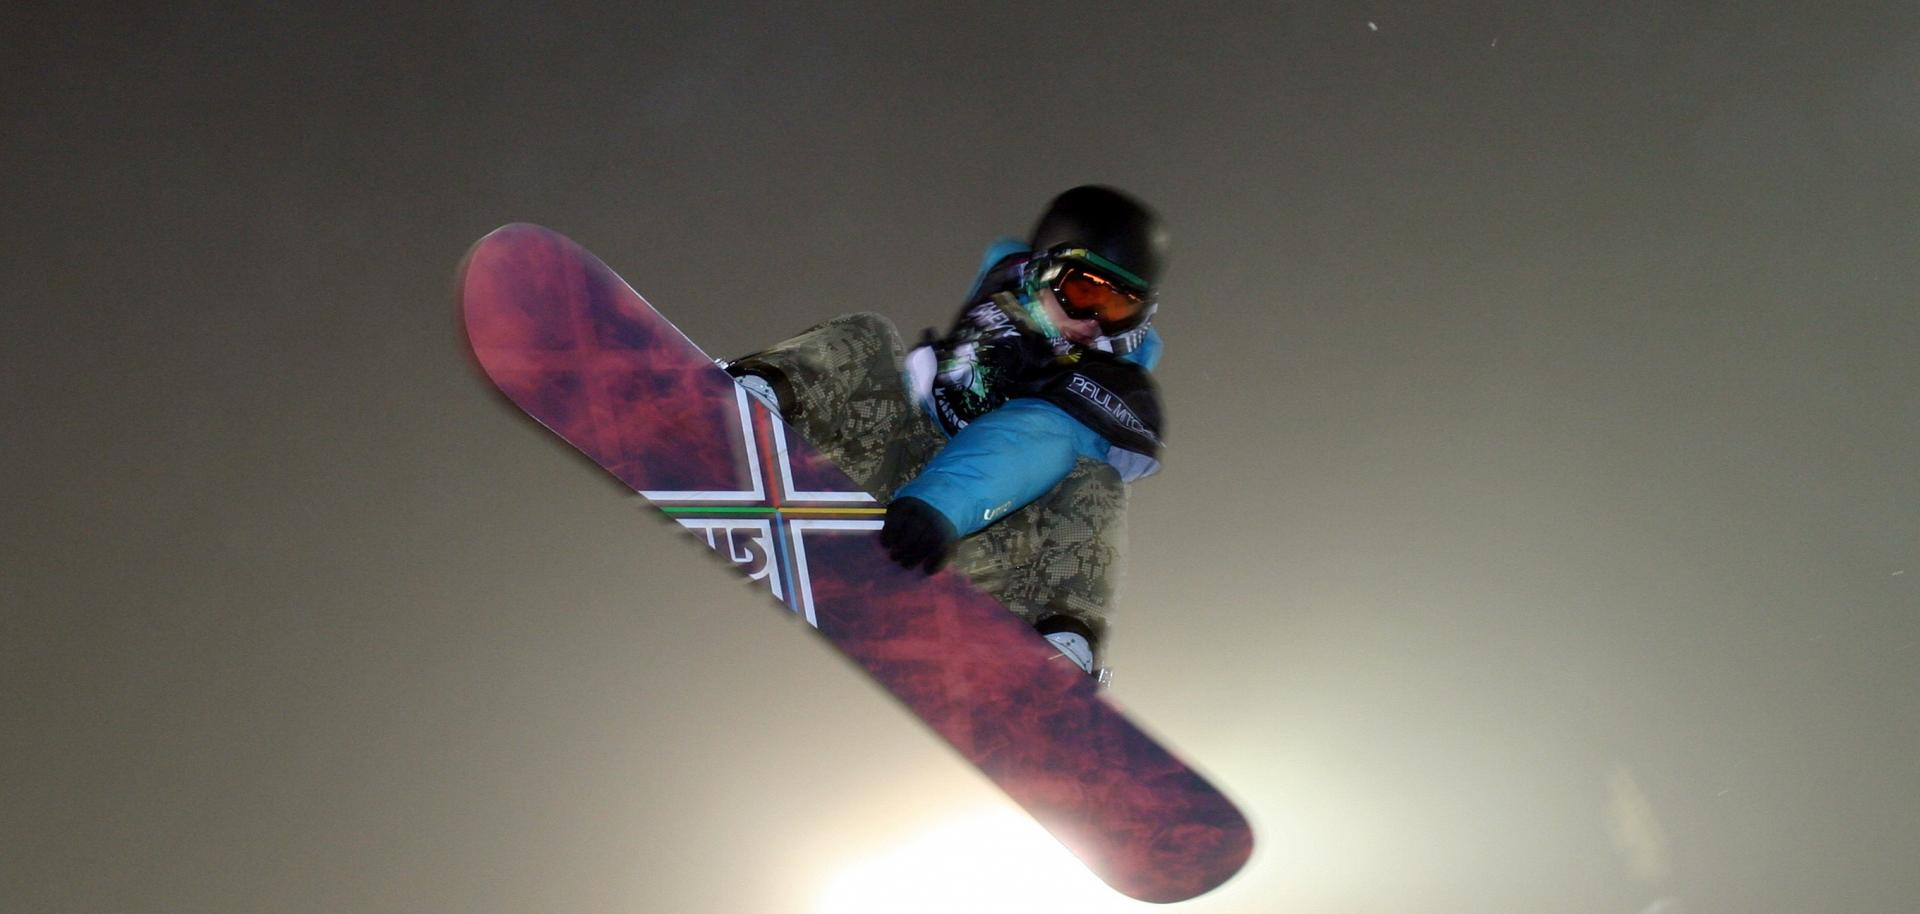 New snowboarding in Russia (Example by Fraidr